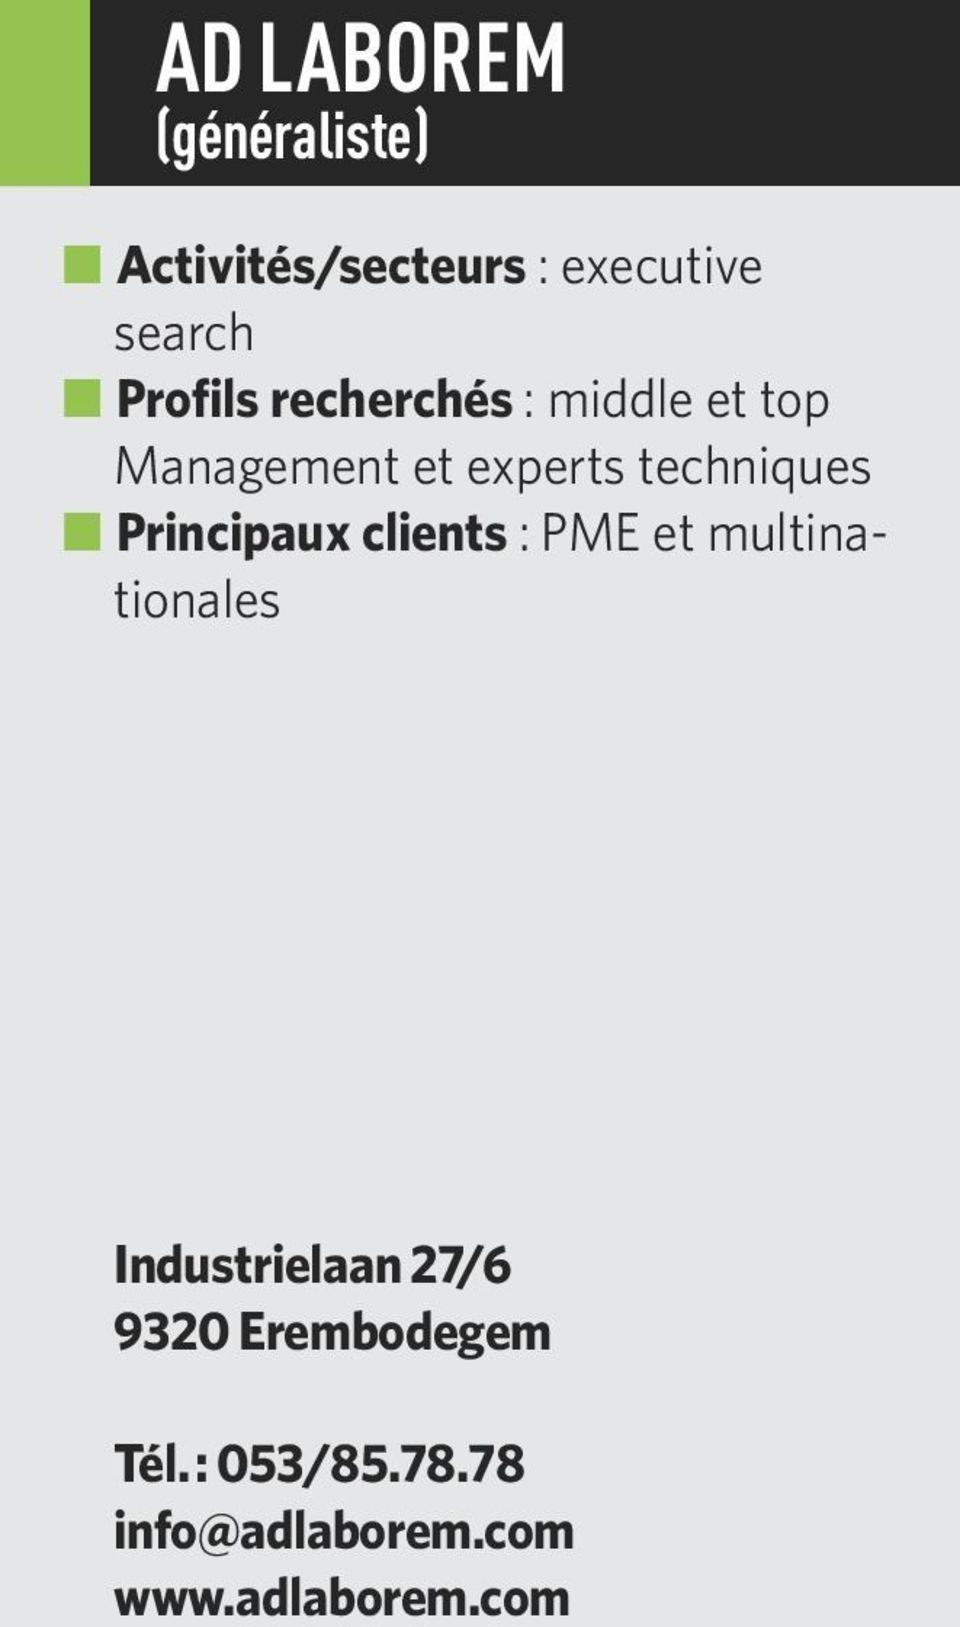 Principaux clients : PME et multinationales Industrielaan 27/6